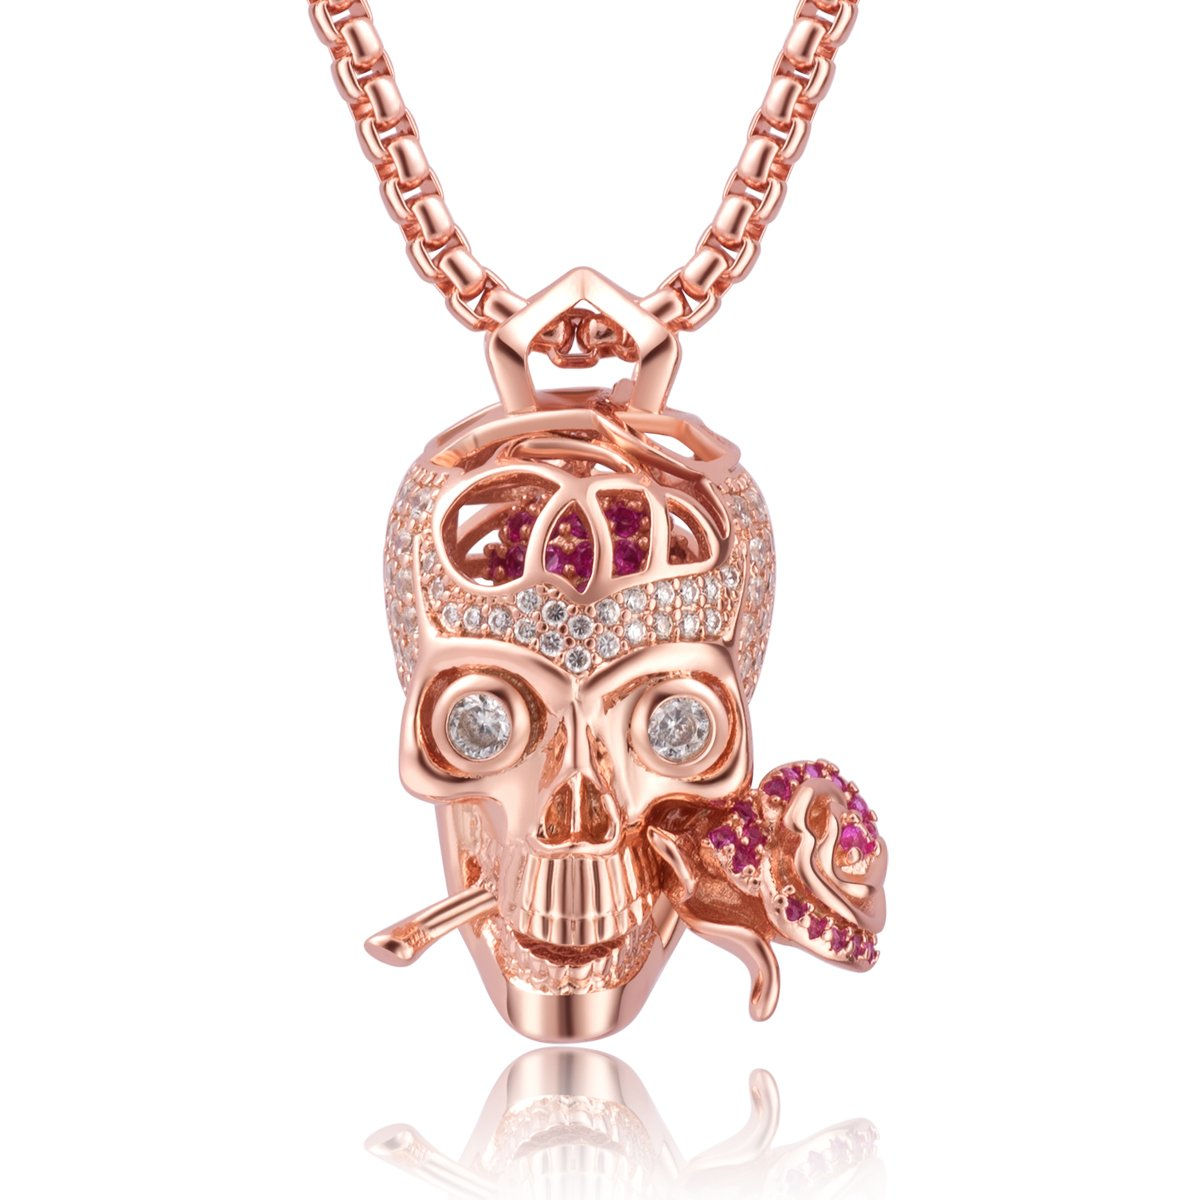 Karseer Shiny Filigree Sugar Skull and Everlasting Rose Charm Pendant Necklace with Crystal Brain Hidden Floating Inside, 24'' Box Chain Matching Costume, Rose Gold Tone Jewelry Gift for Men and Women